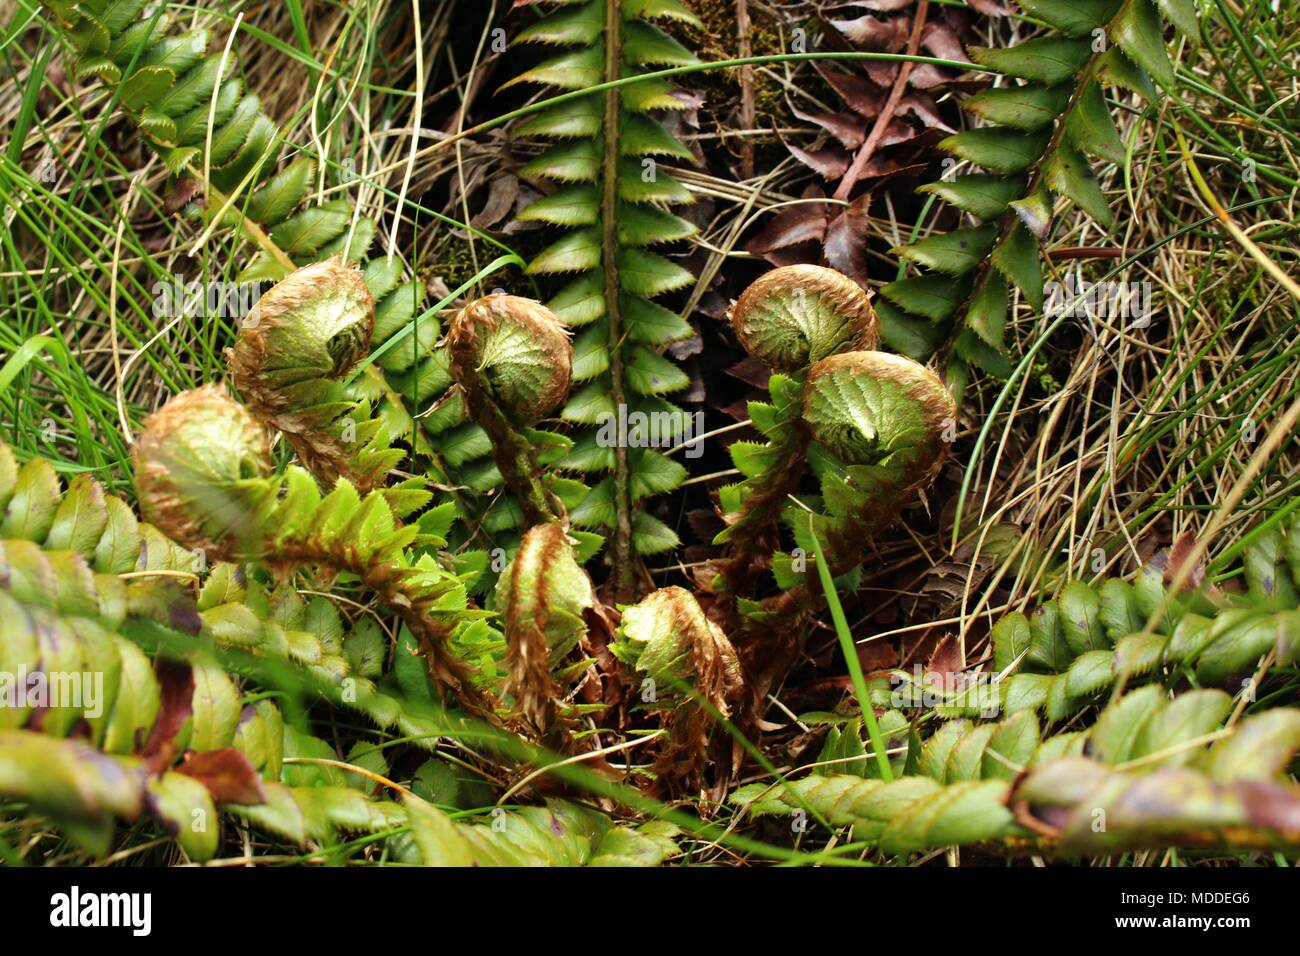 Curled young leaves of fern Stock Photo